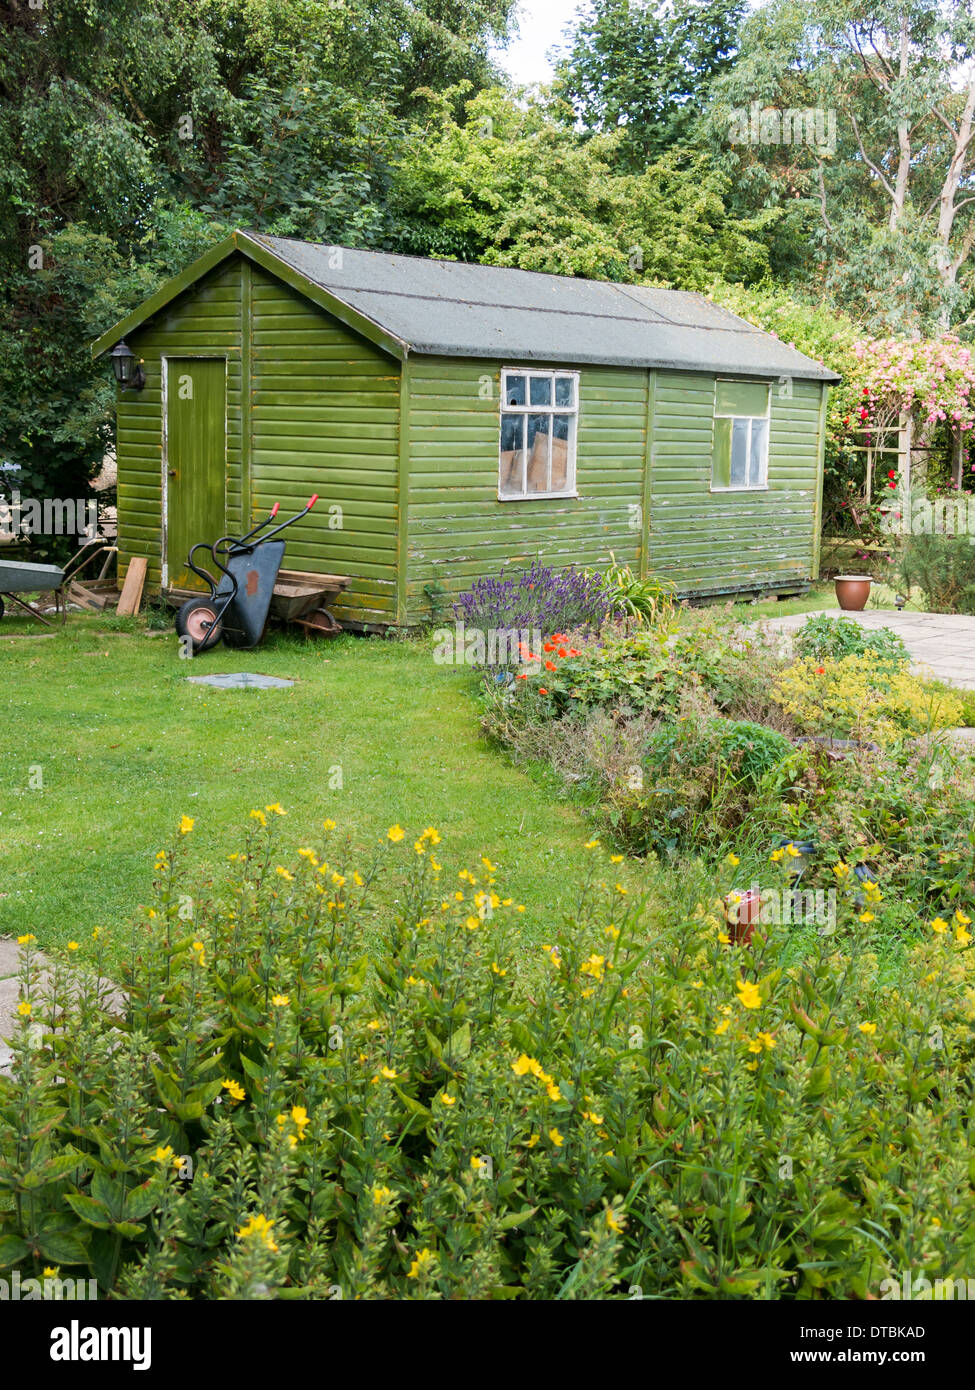 Large Green Garden Shed With Lawn And Wheelbarrow In Front